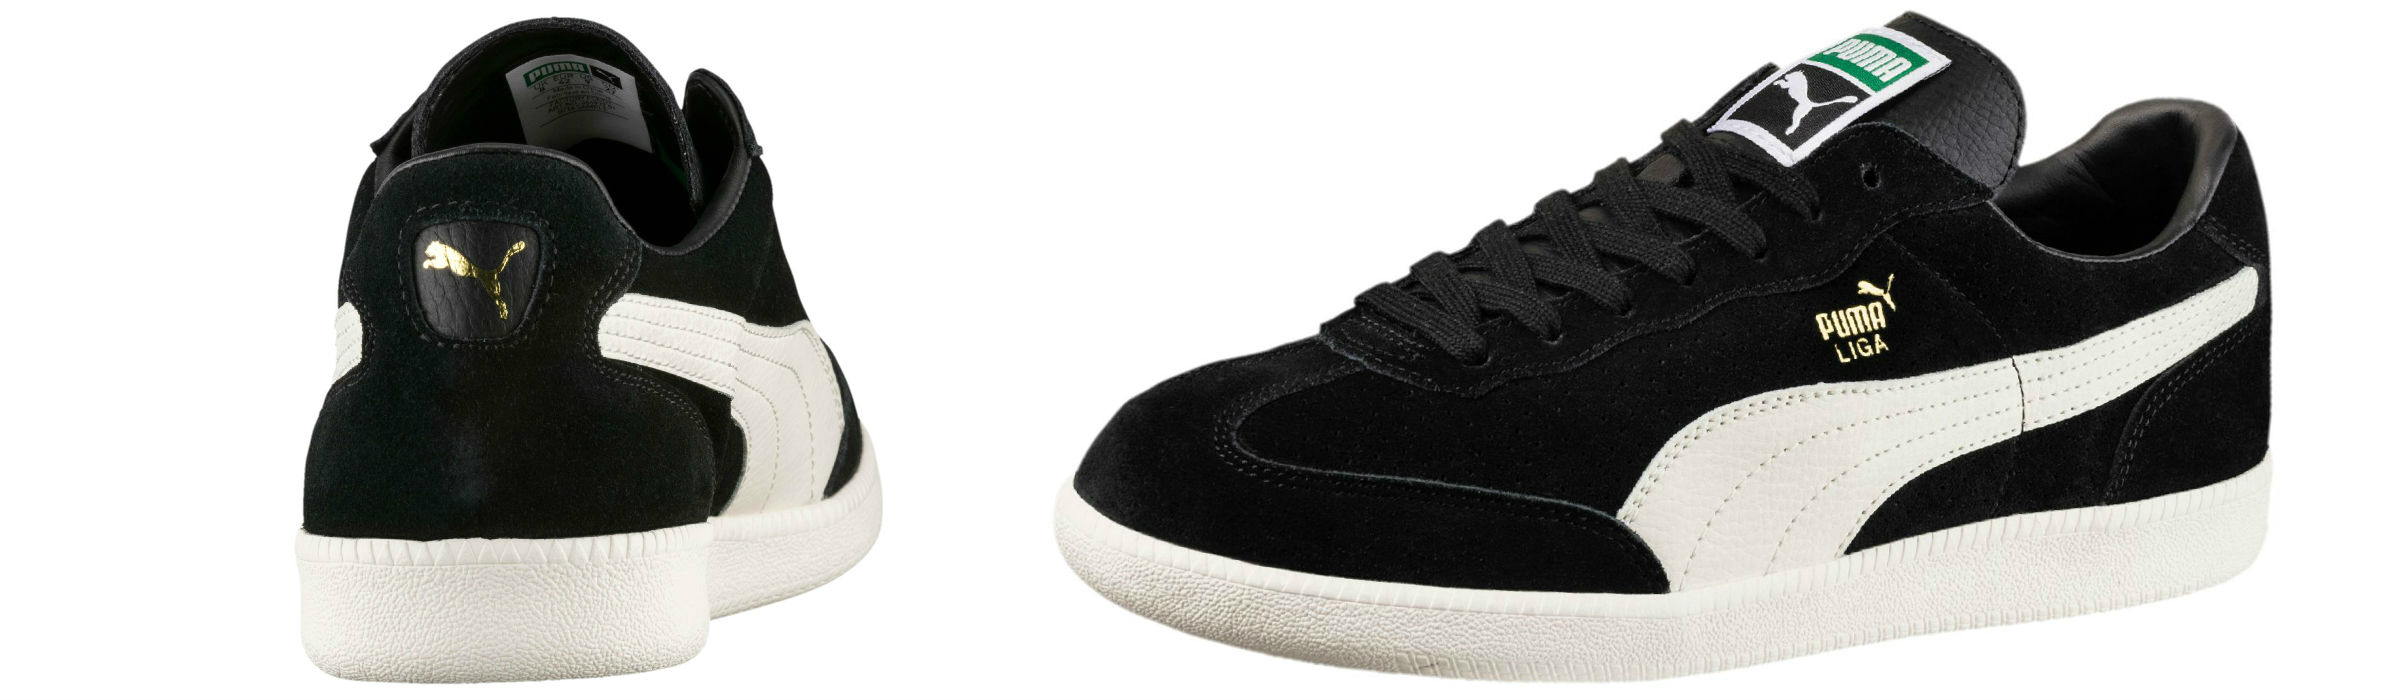 Puma Liga Suede Perf Trainers Puma Black Whisper White Puma Team Gold Full